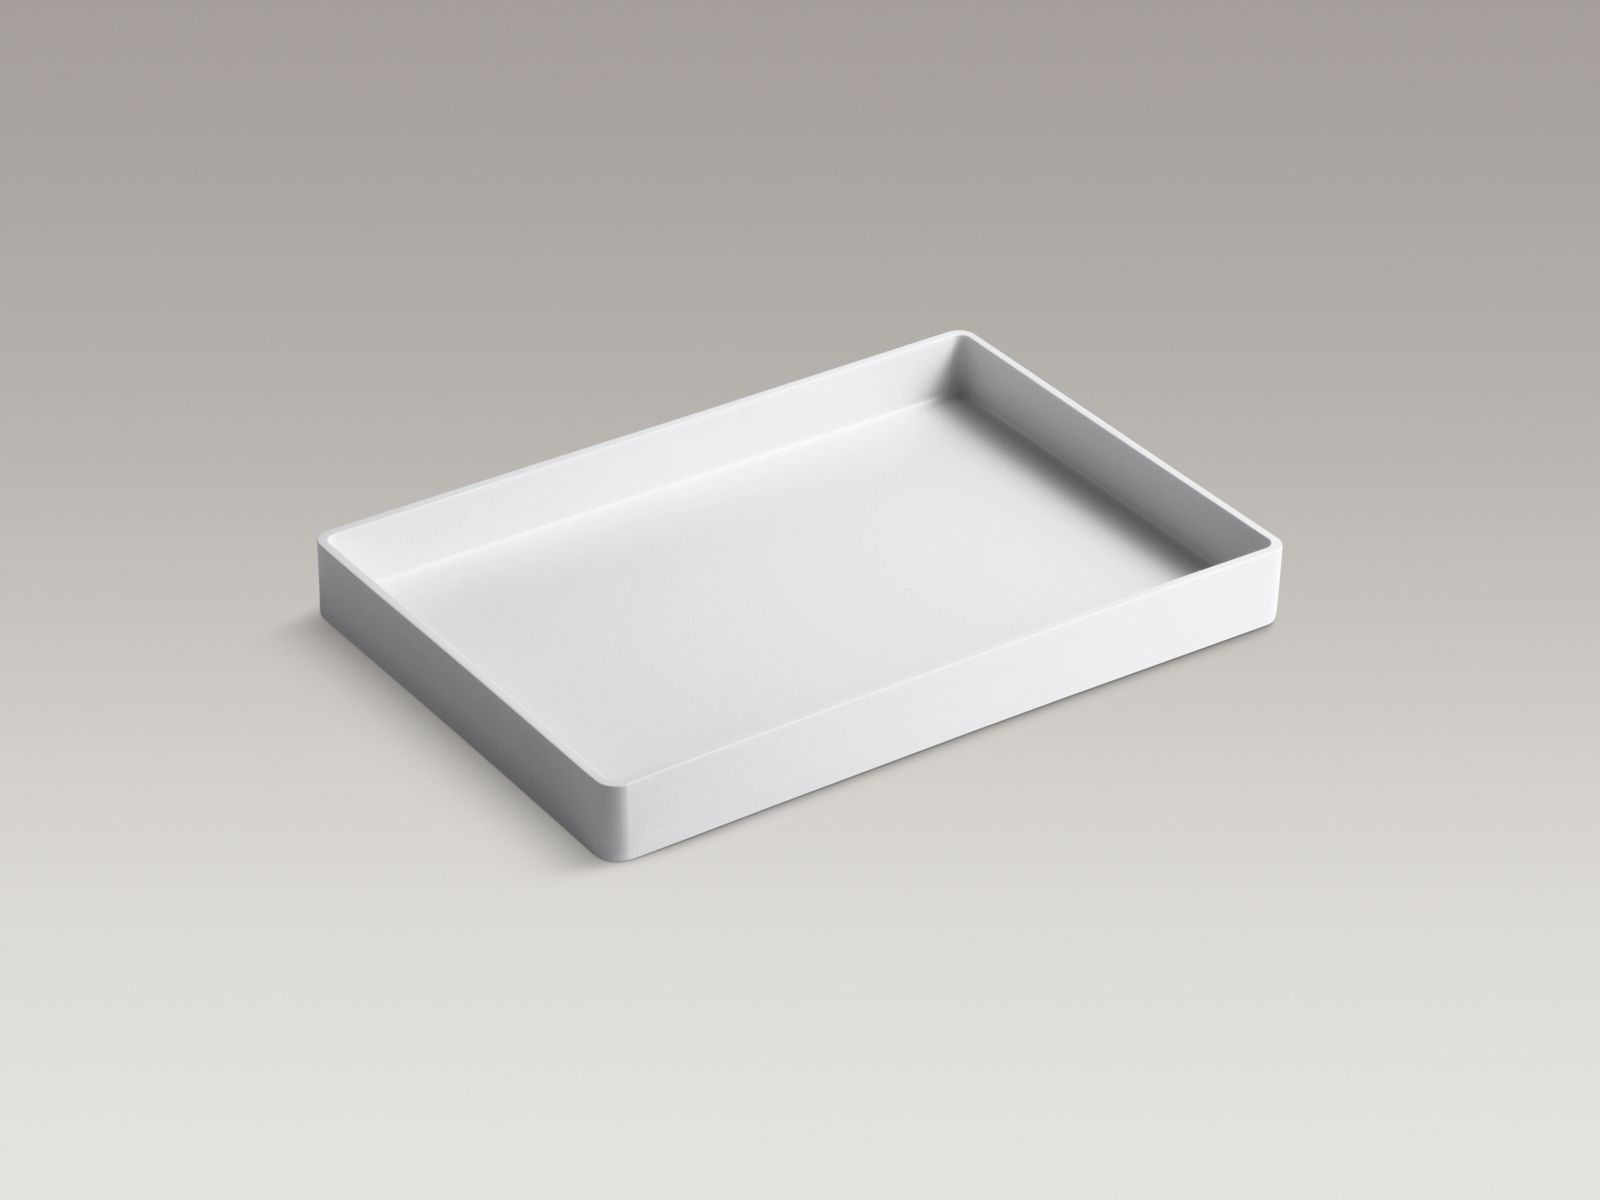 Kohler K-6231-0 Flip Tray for Stages 33 In. and 45 In. Sinks White